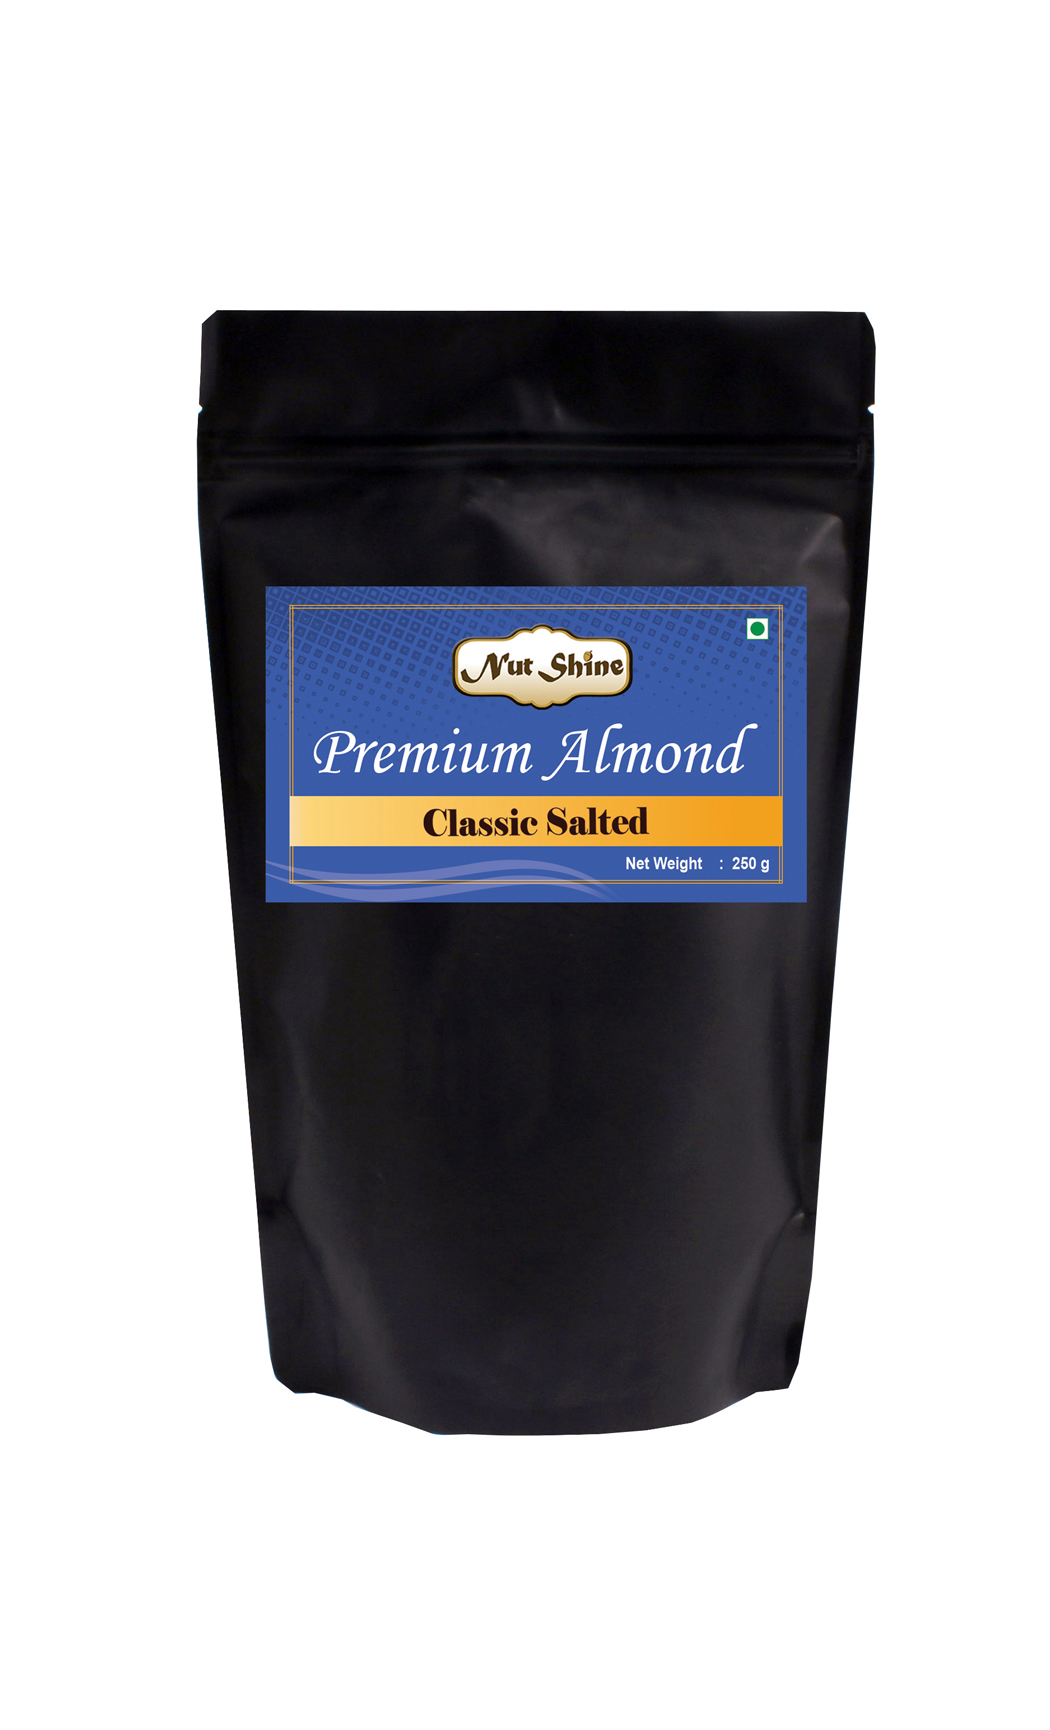 Classic Salted Almonds 250gms - Buy Online